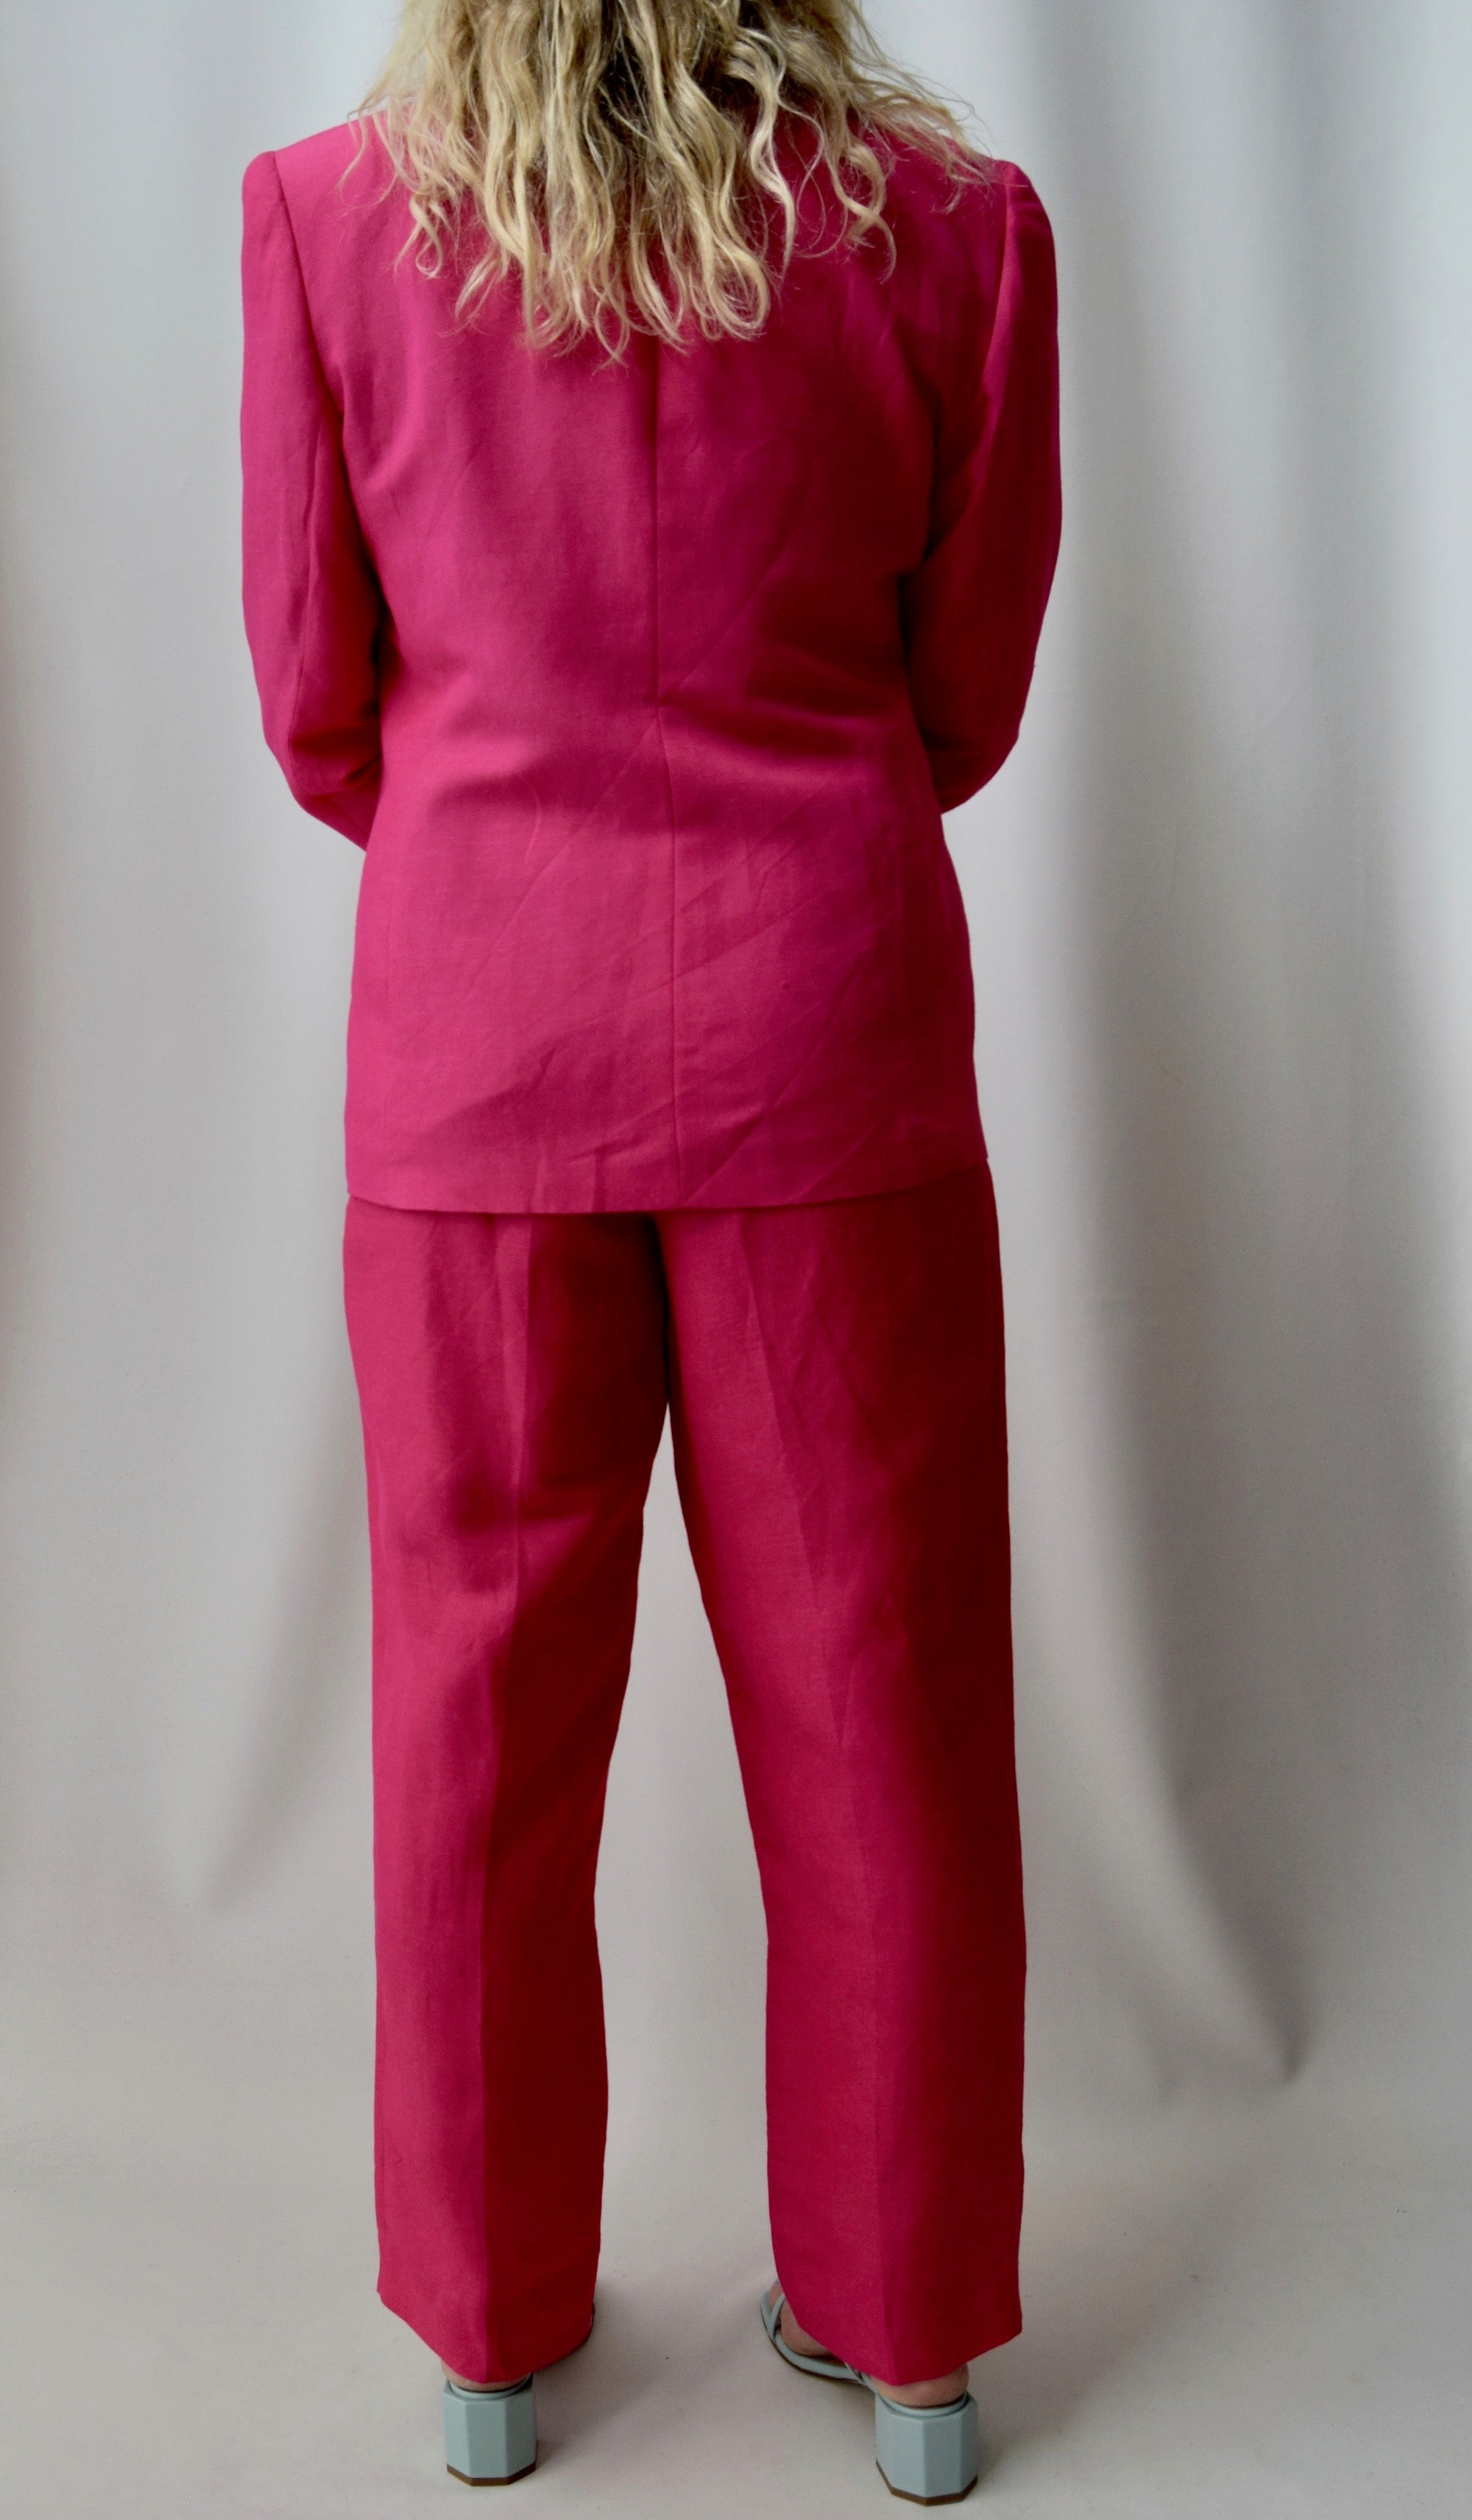 Hot Pink Power Suit